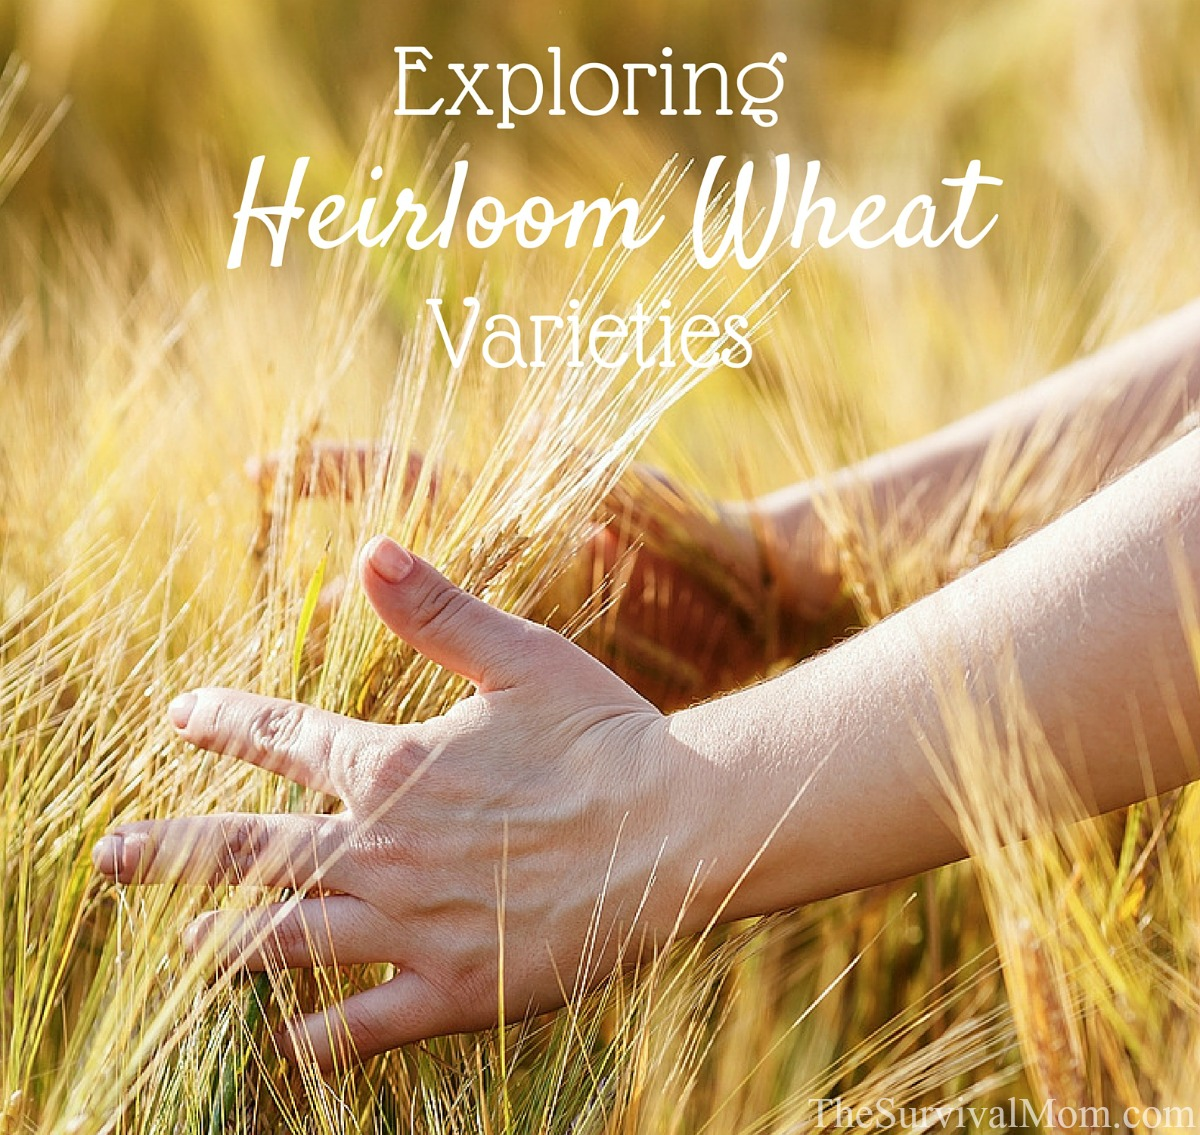 heirloom wheat varieties